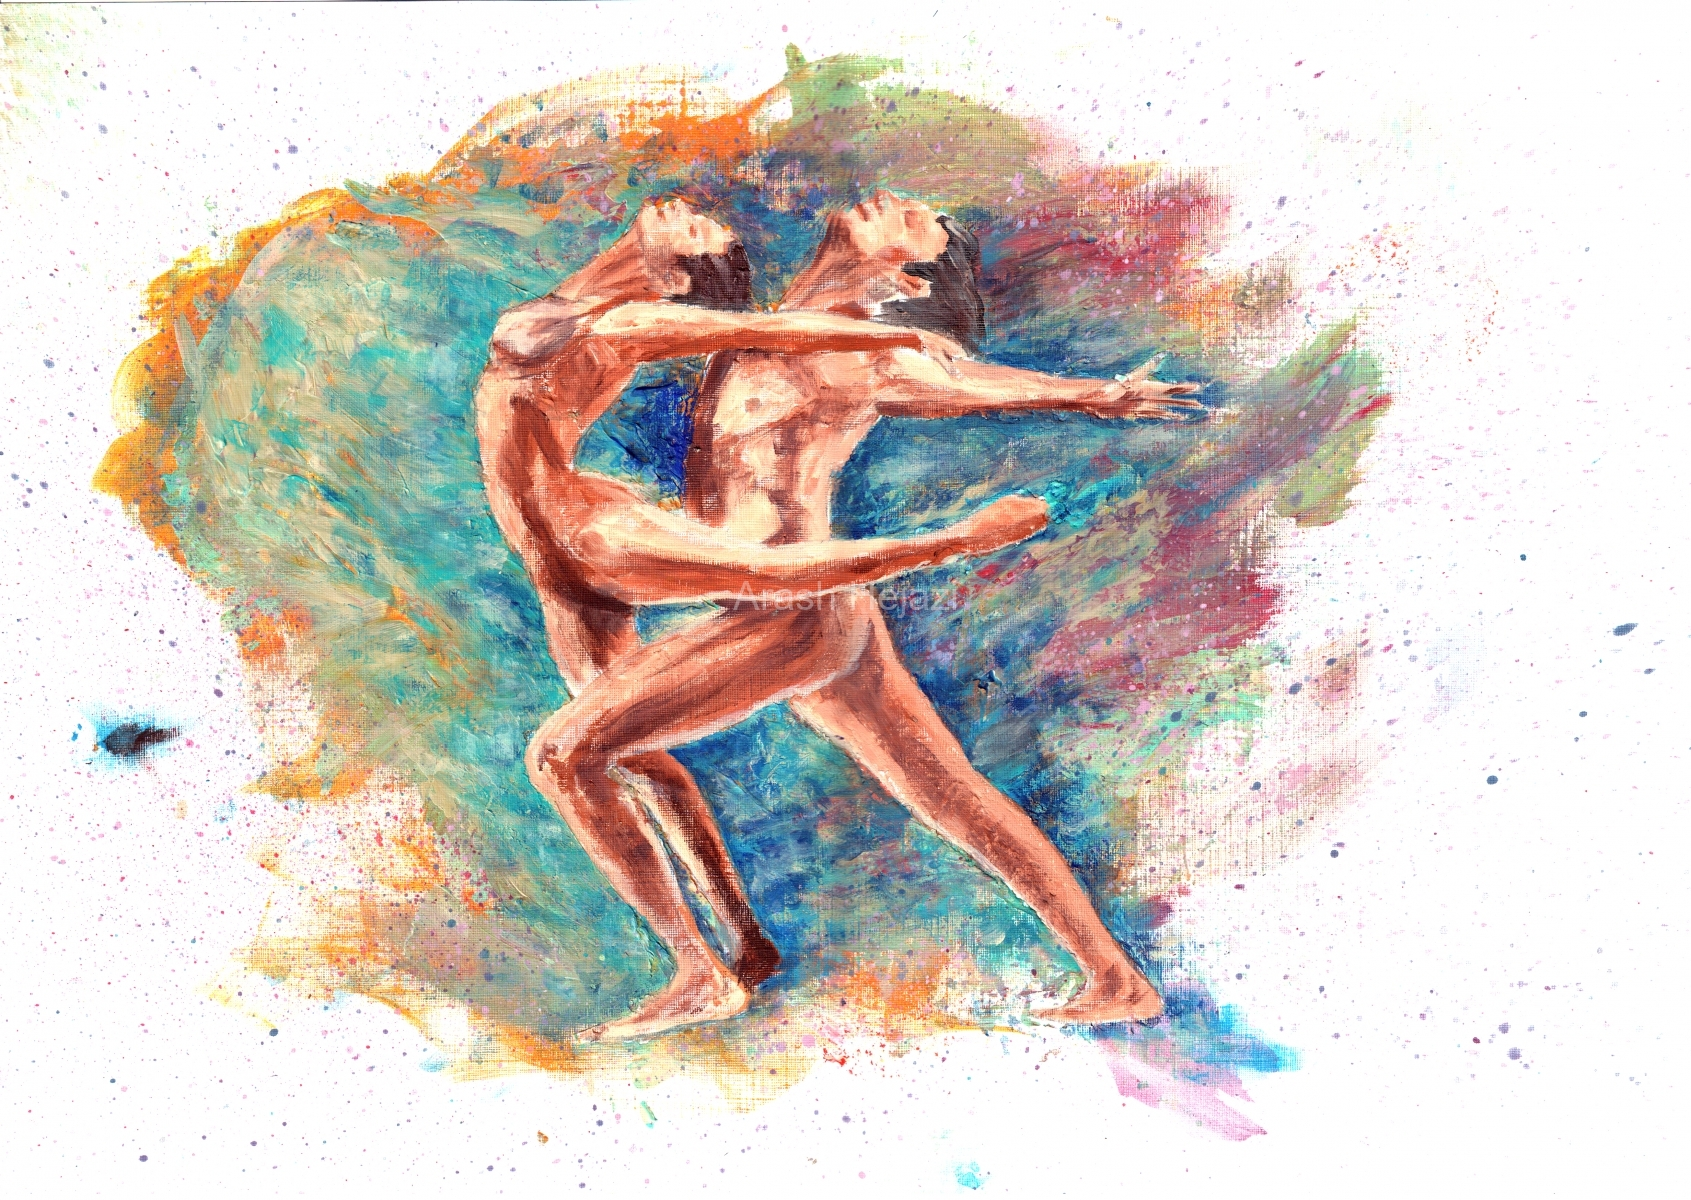 Dancers- Arash Hejazi - 2019